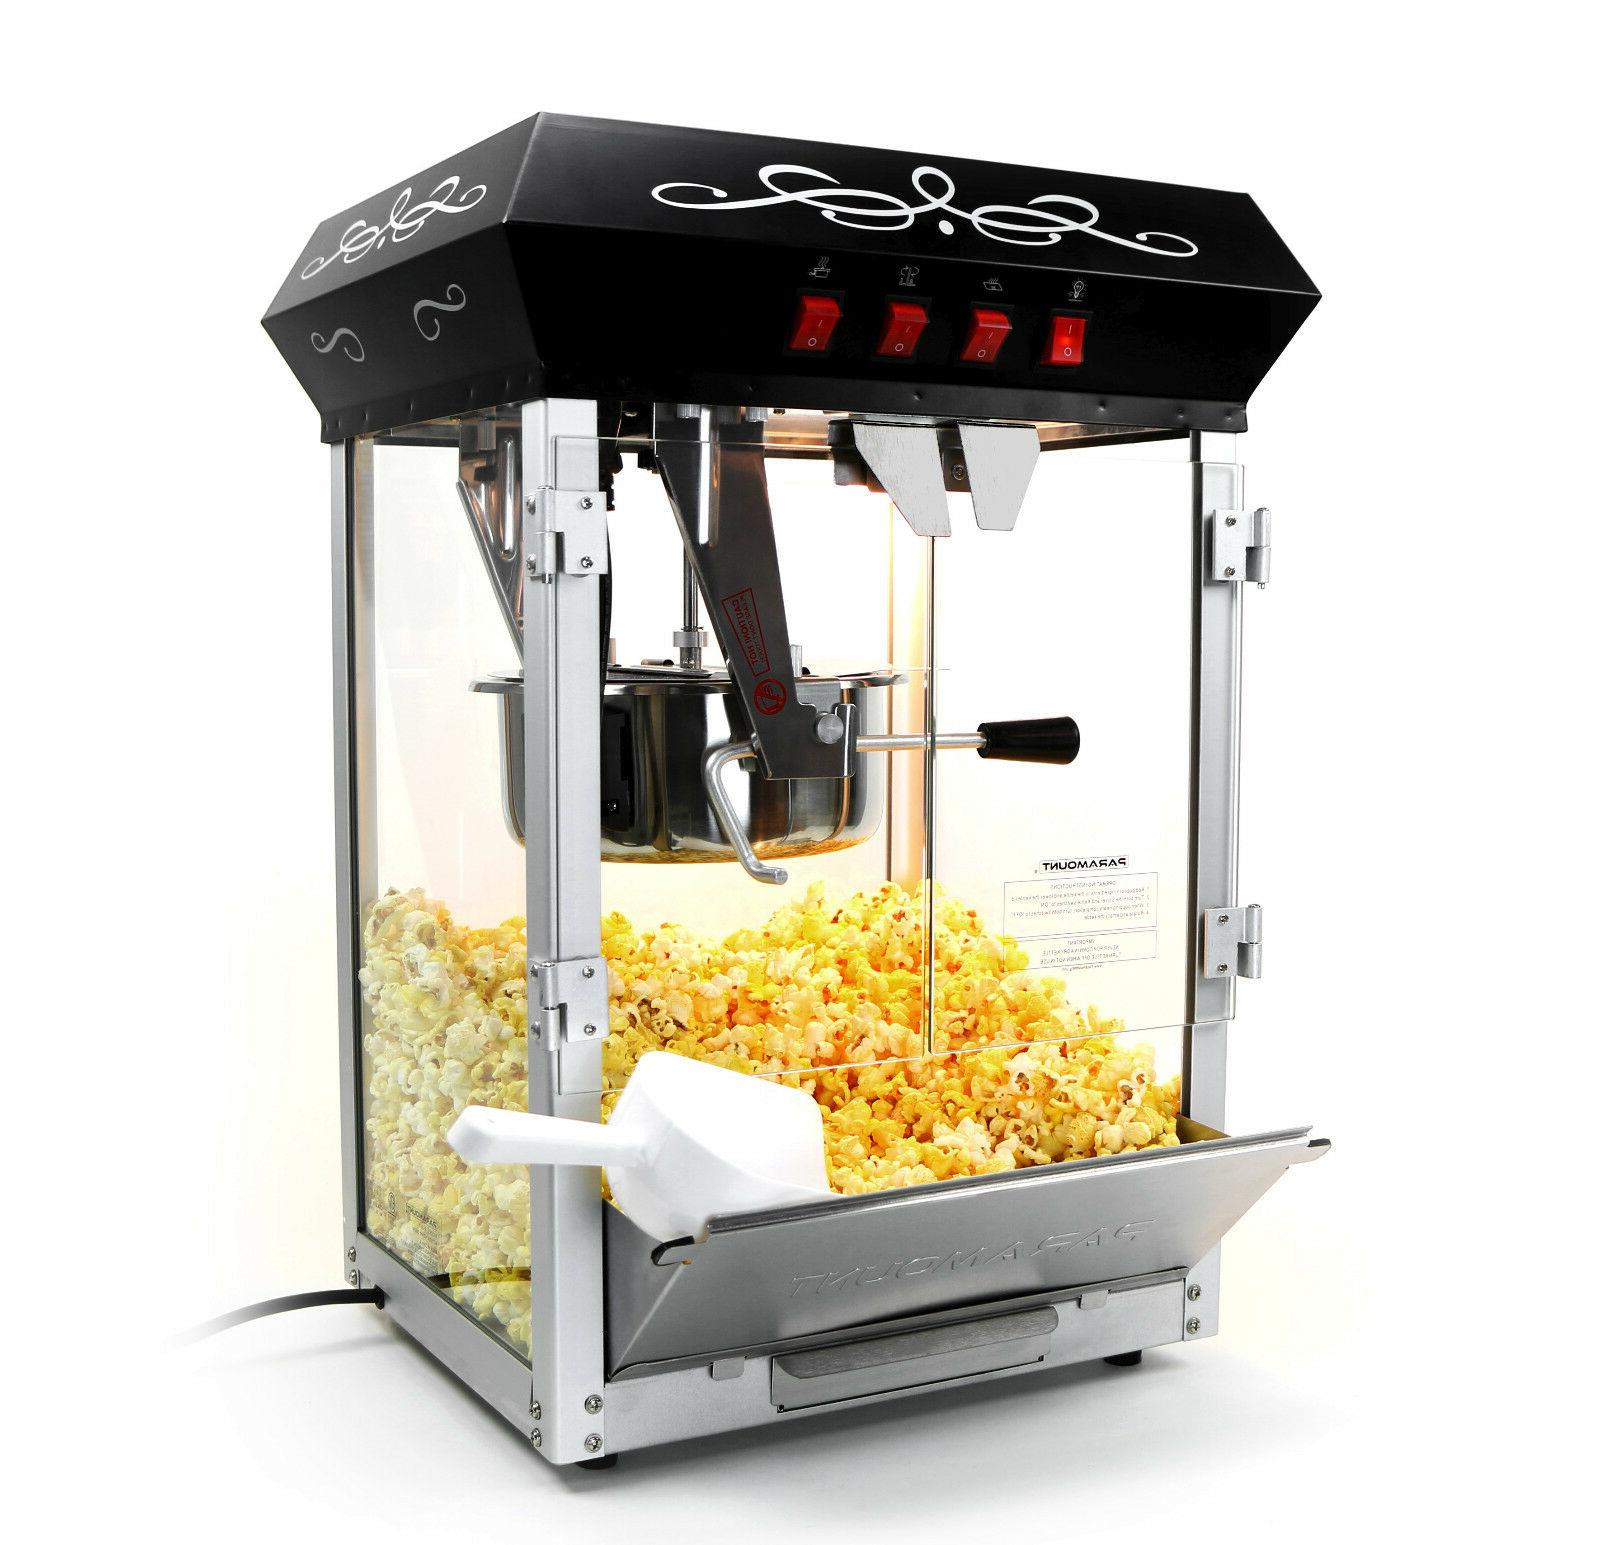 8oz popcorn maker machine new upgraded 8